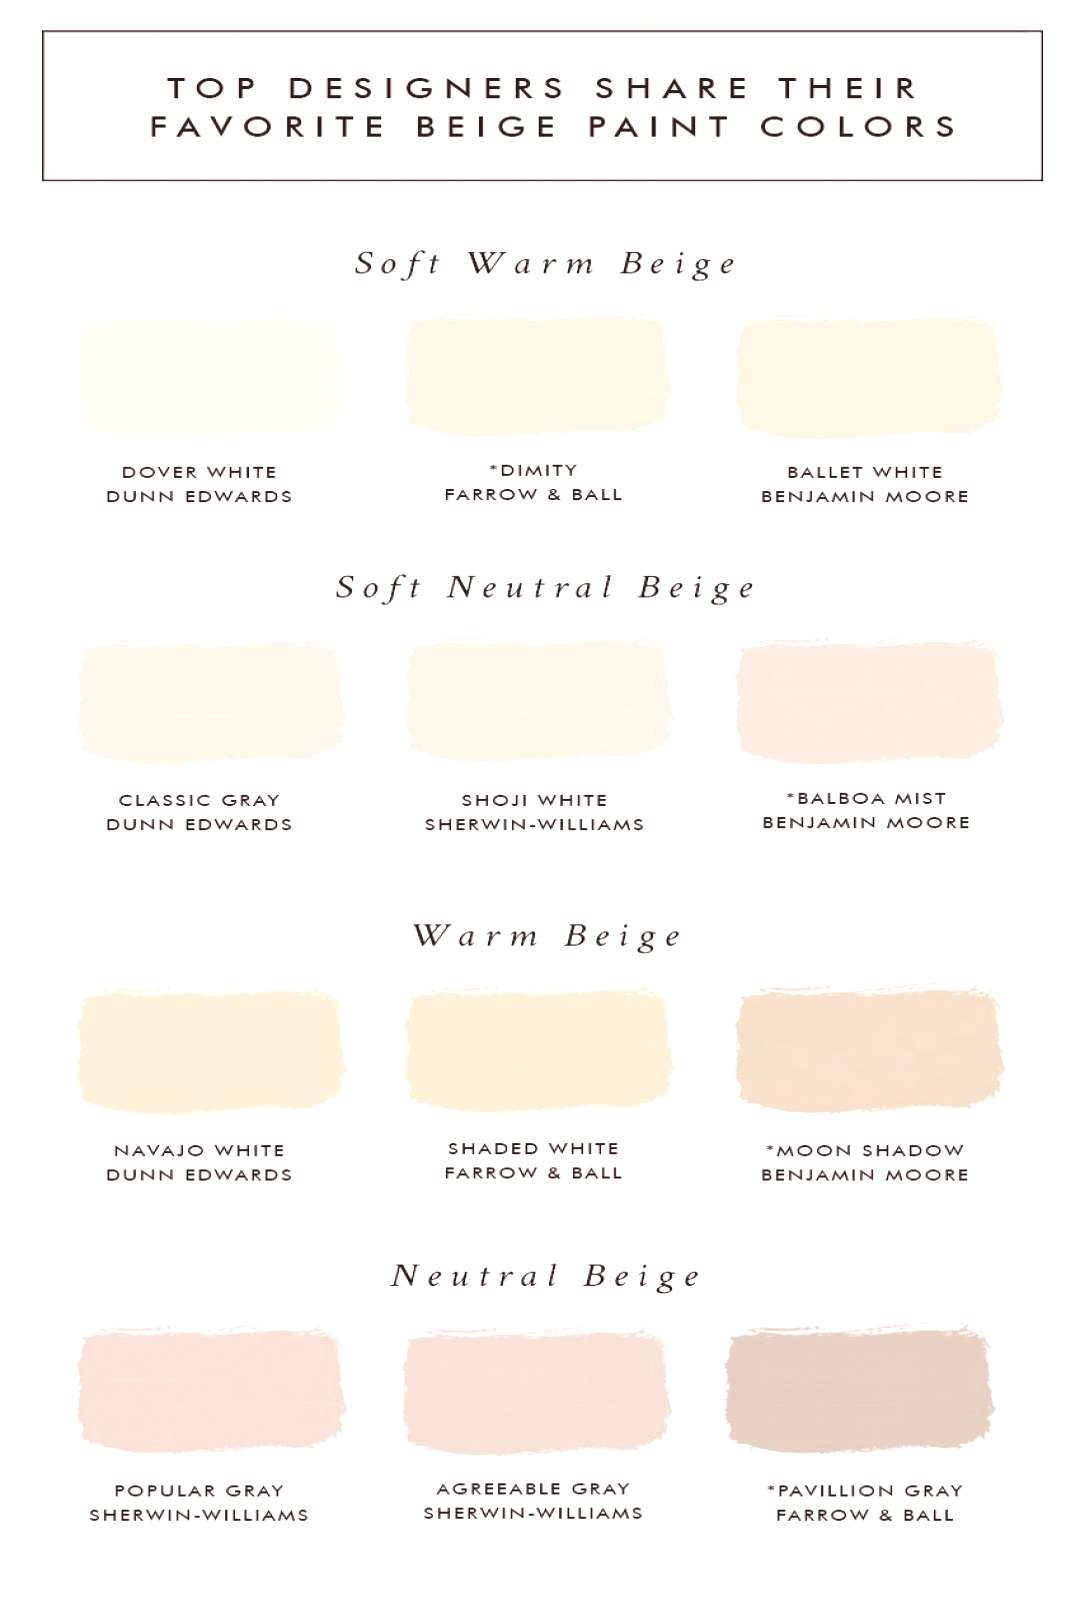 How do you know which paint colors to try? To help answer that question, here are the top 12 design